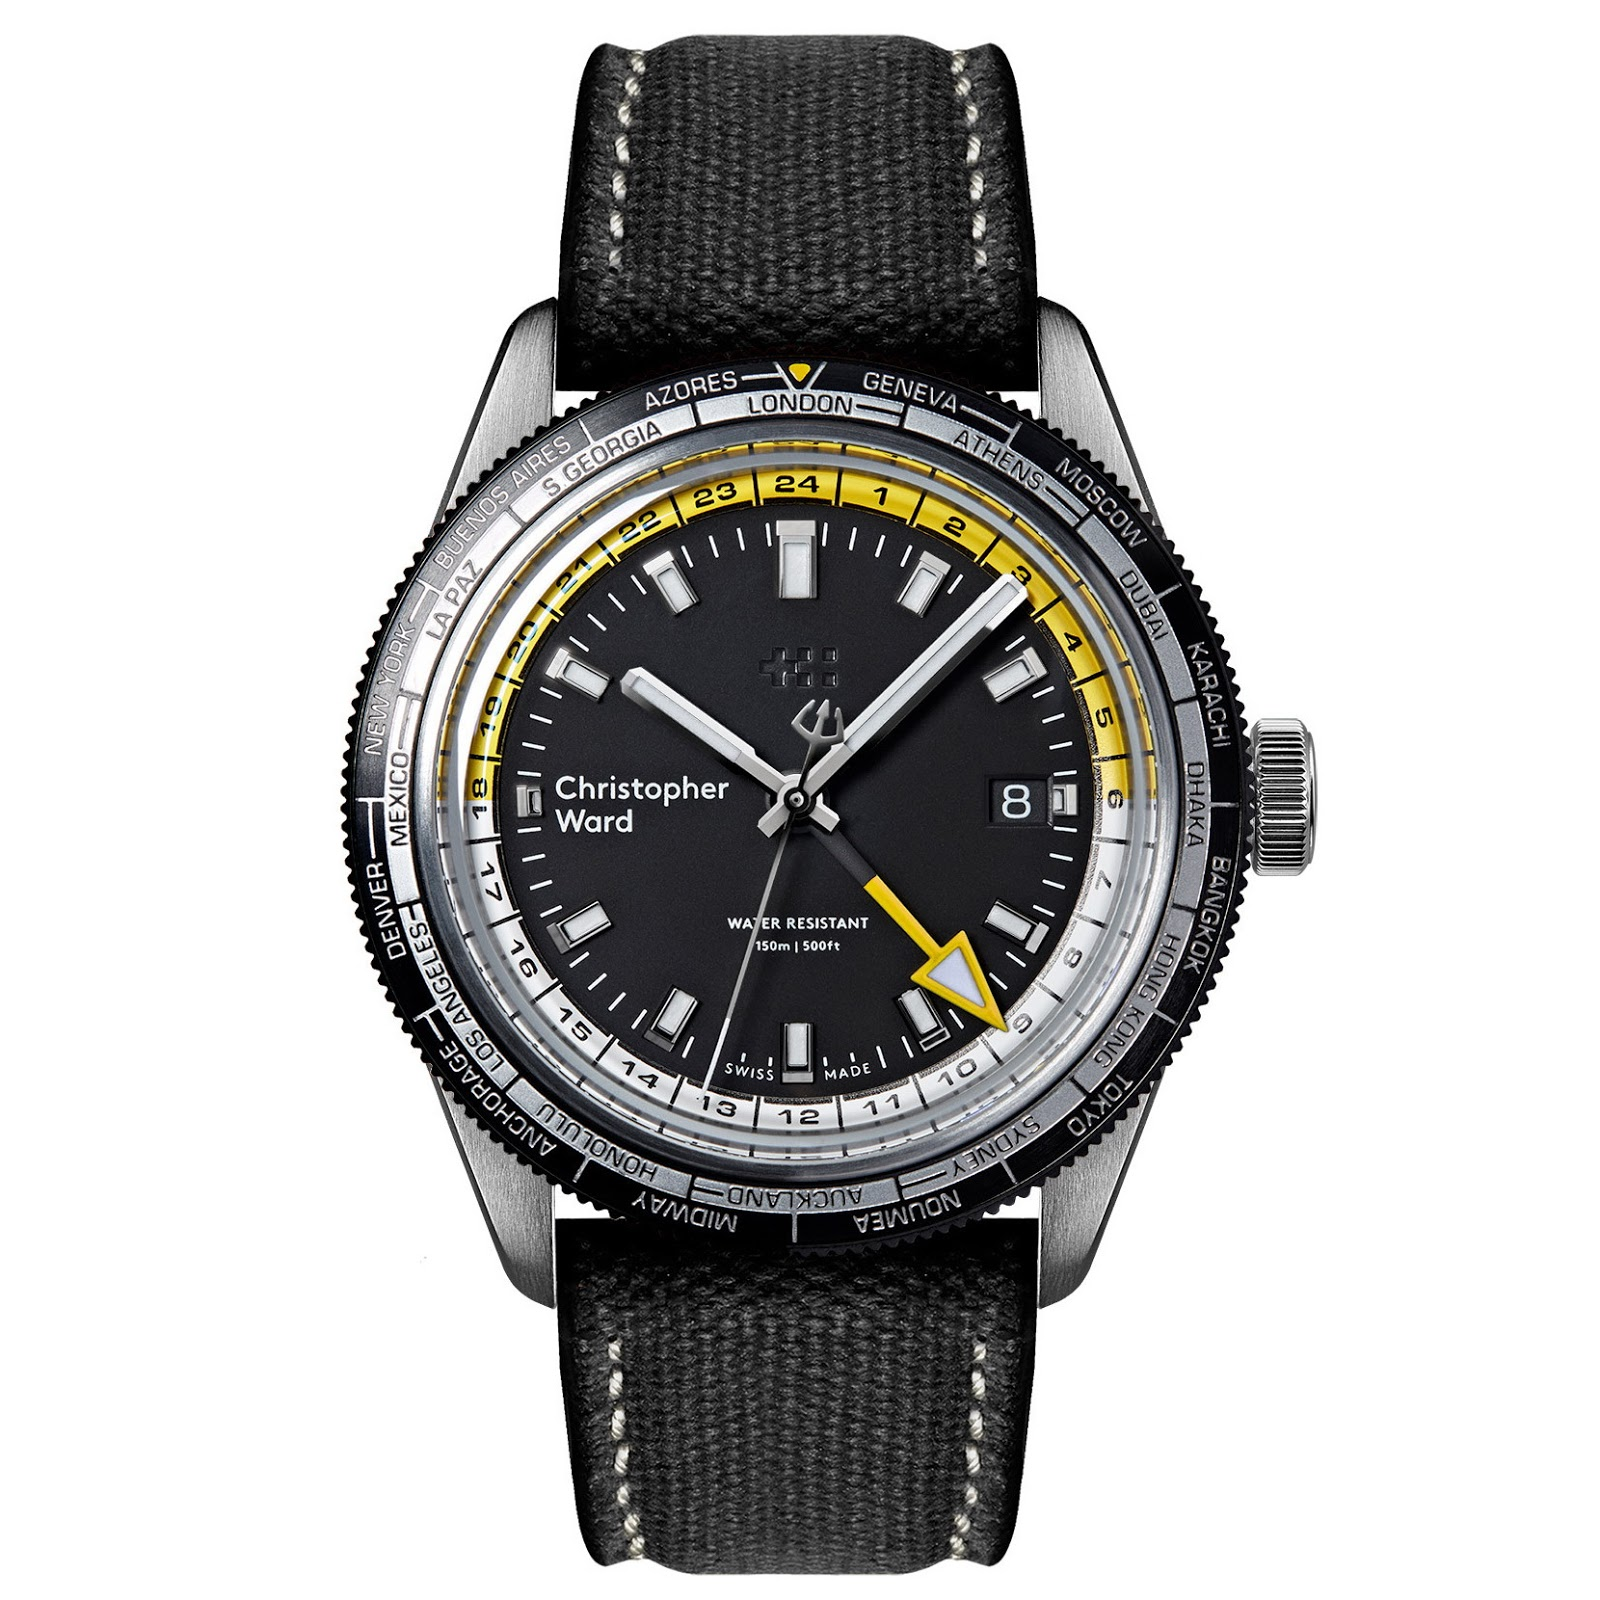 Christopher Ward's new C65 GMT Worldtimer and C60 Elite GMT 1000 CHRISTOPHER%2BWARD%2BC65%2BGMT%2BWorldtimer%2B02